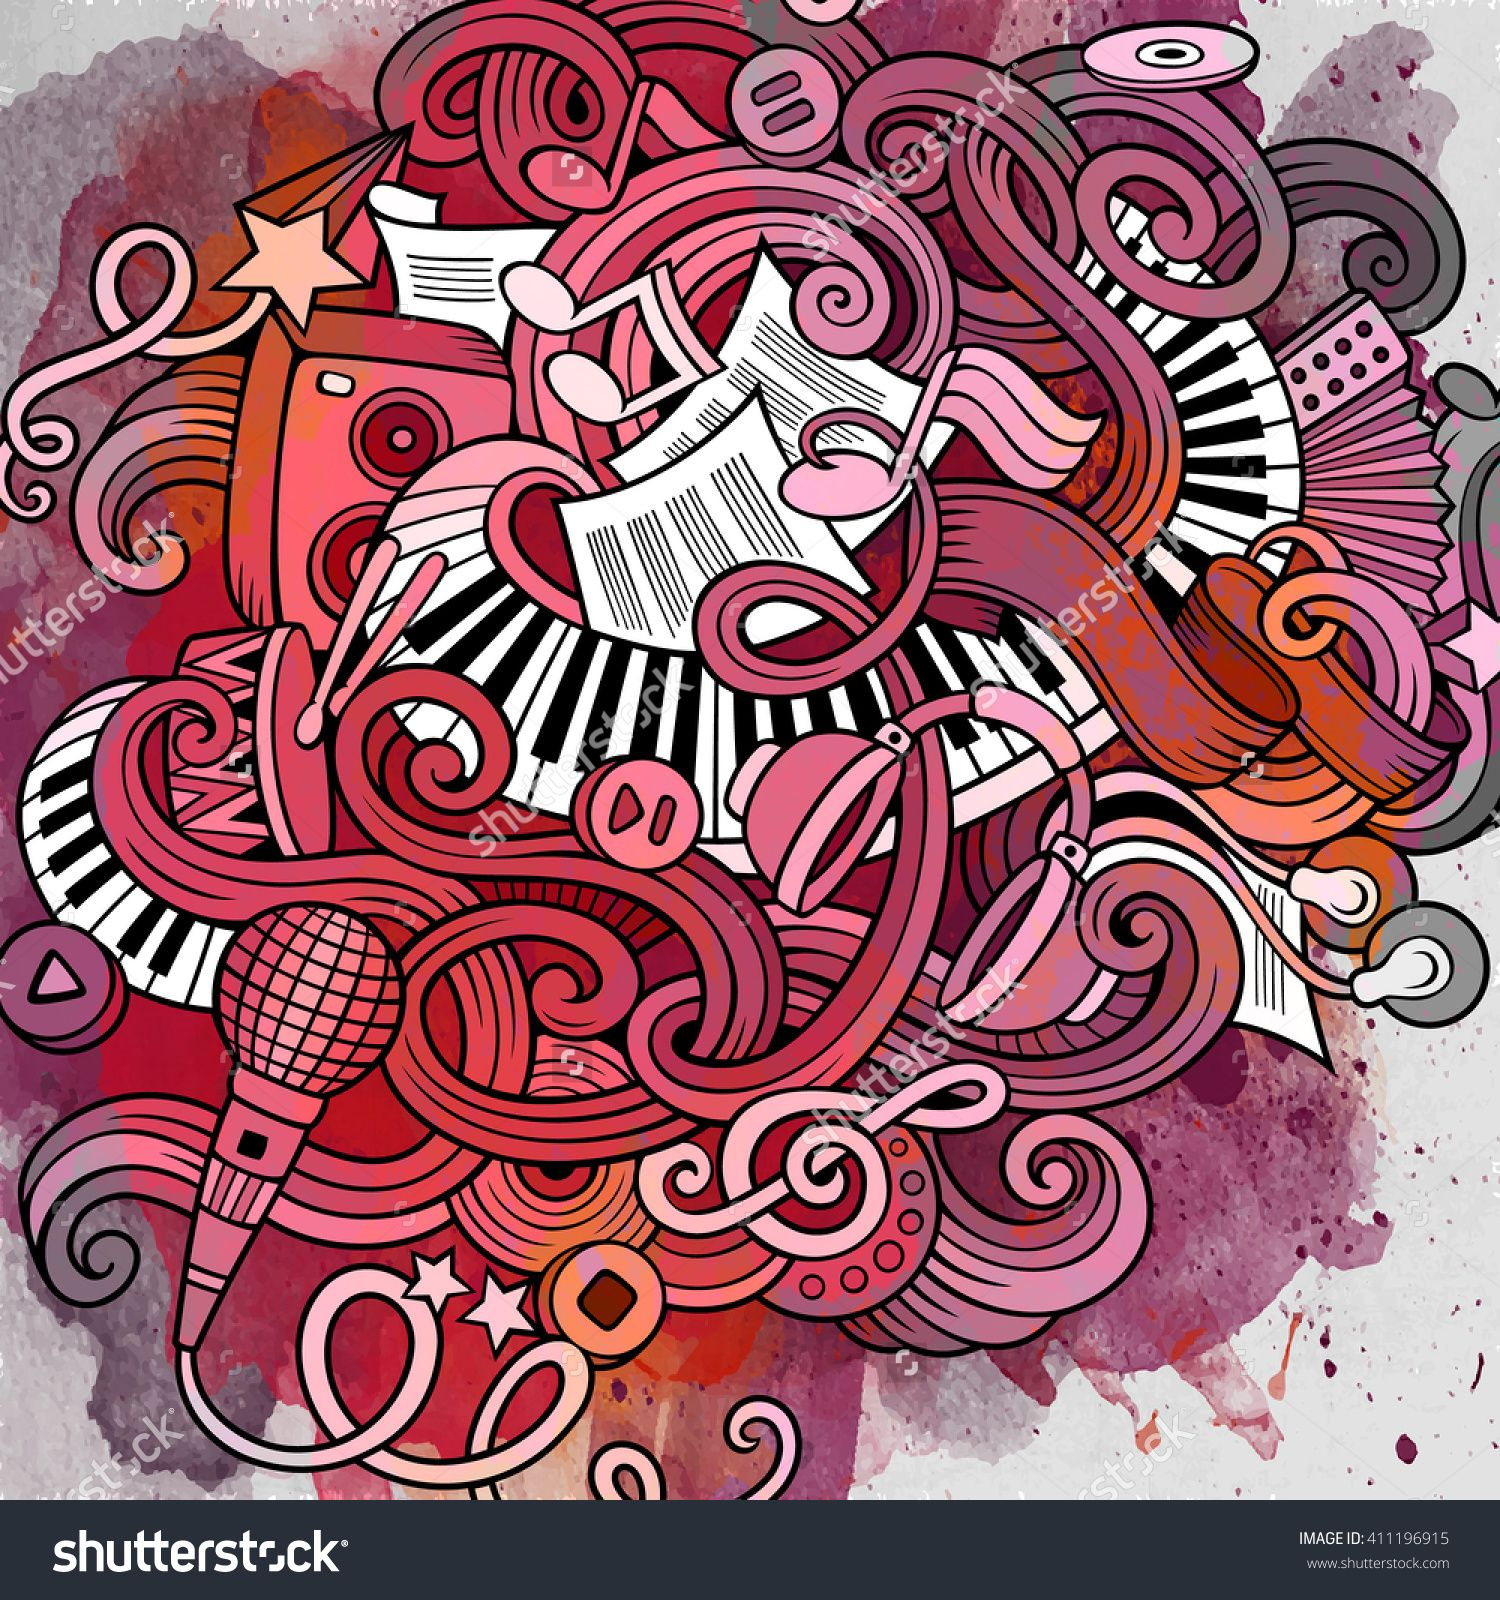 Cartoon Hand-Drawn Doodles Musical Paint Illustration. Vintage Music Watercolor Detailed, With Lots Of Objects Vector Background. Music Paint Art. - 411196915 : Shutterstock